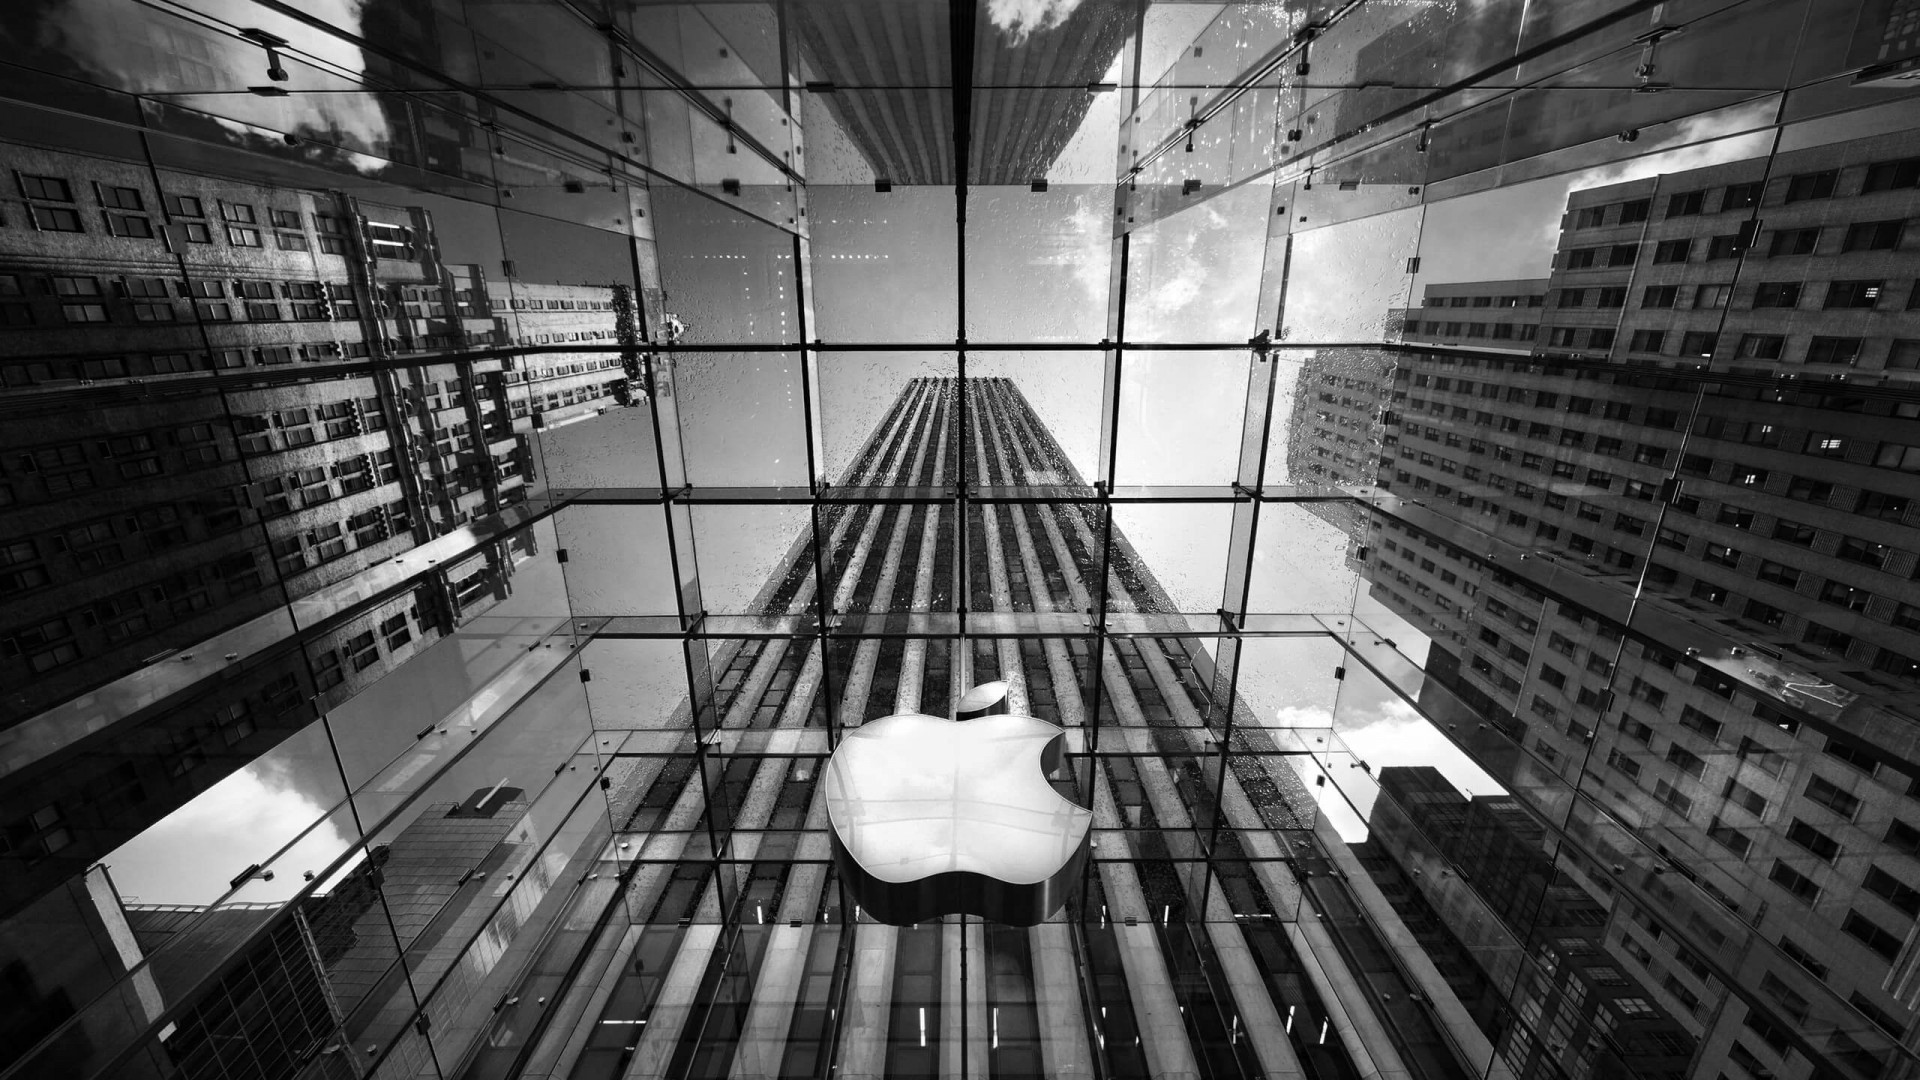 Apple Store, Fifth Avenue, New York City Wallpaper for Desktop 1920x1080